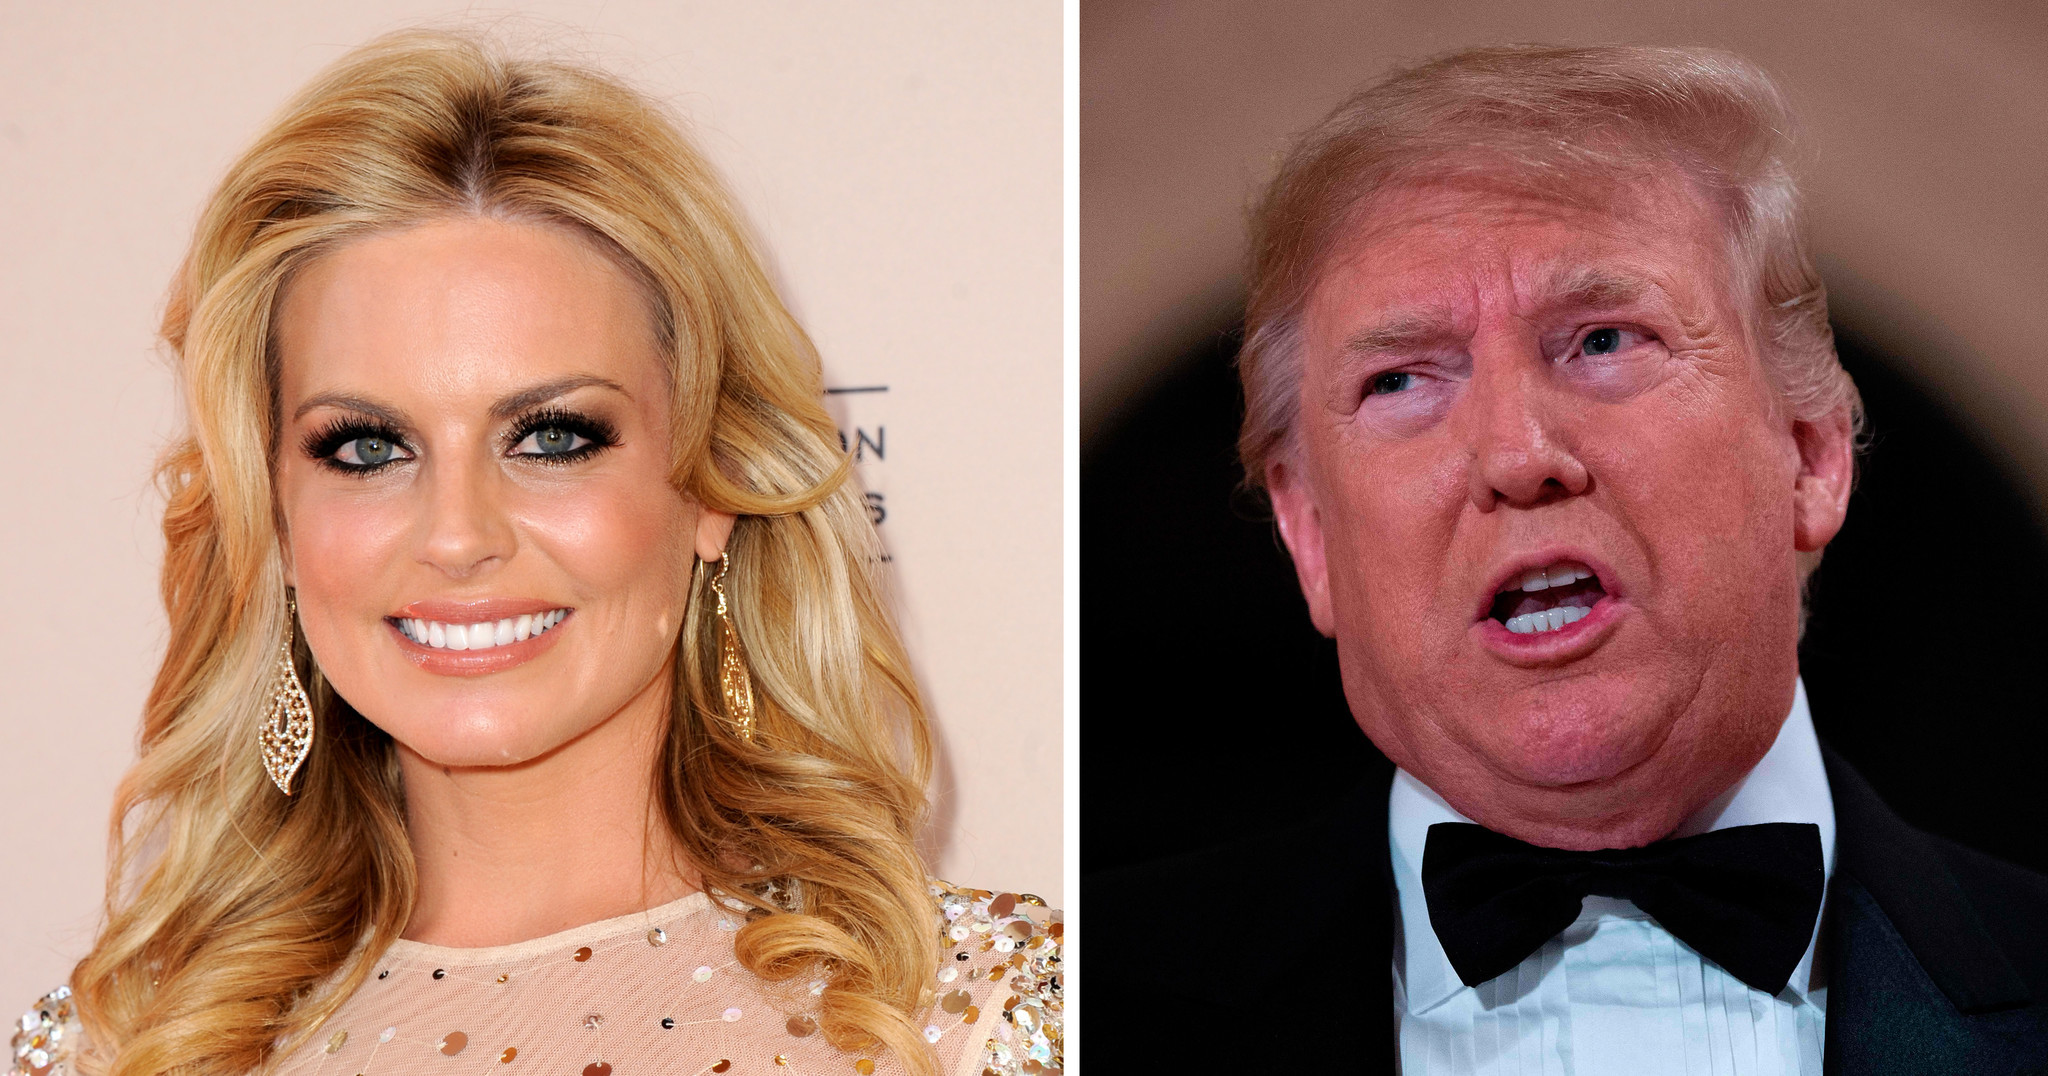 Ex-Fox News reporter Courtney Friel claims Donald Trump invited her to Trump Tower to 'kiss'